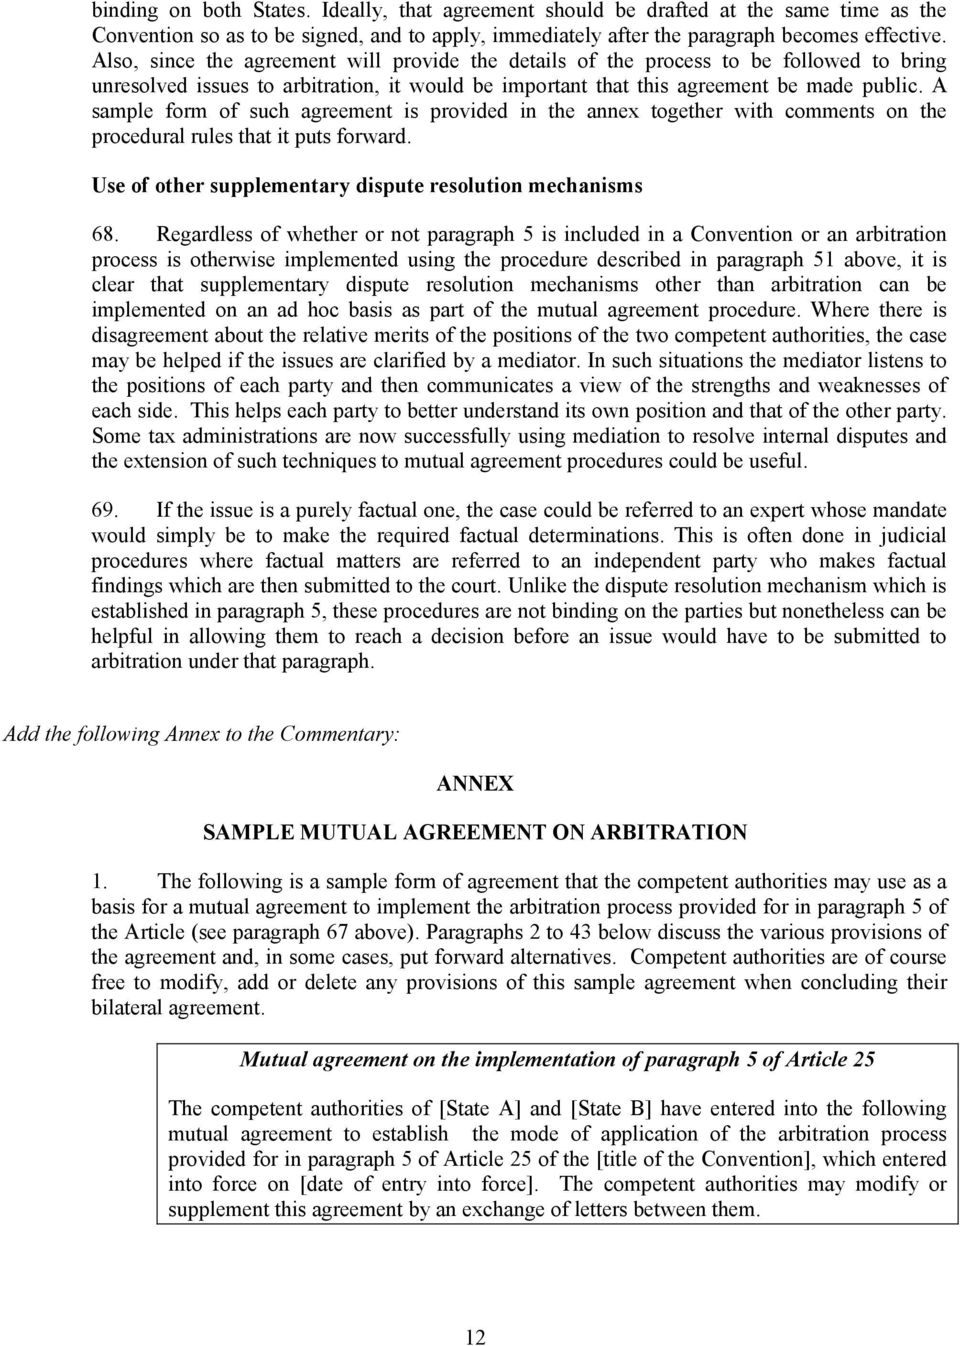 A sample form of such agreement is provided in the annex together with comments on the procedural rules that it puts forward. Use of other supplementary dispute resolution mechanisms 68.